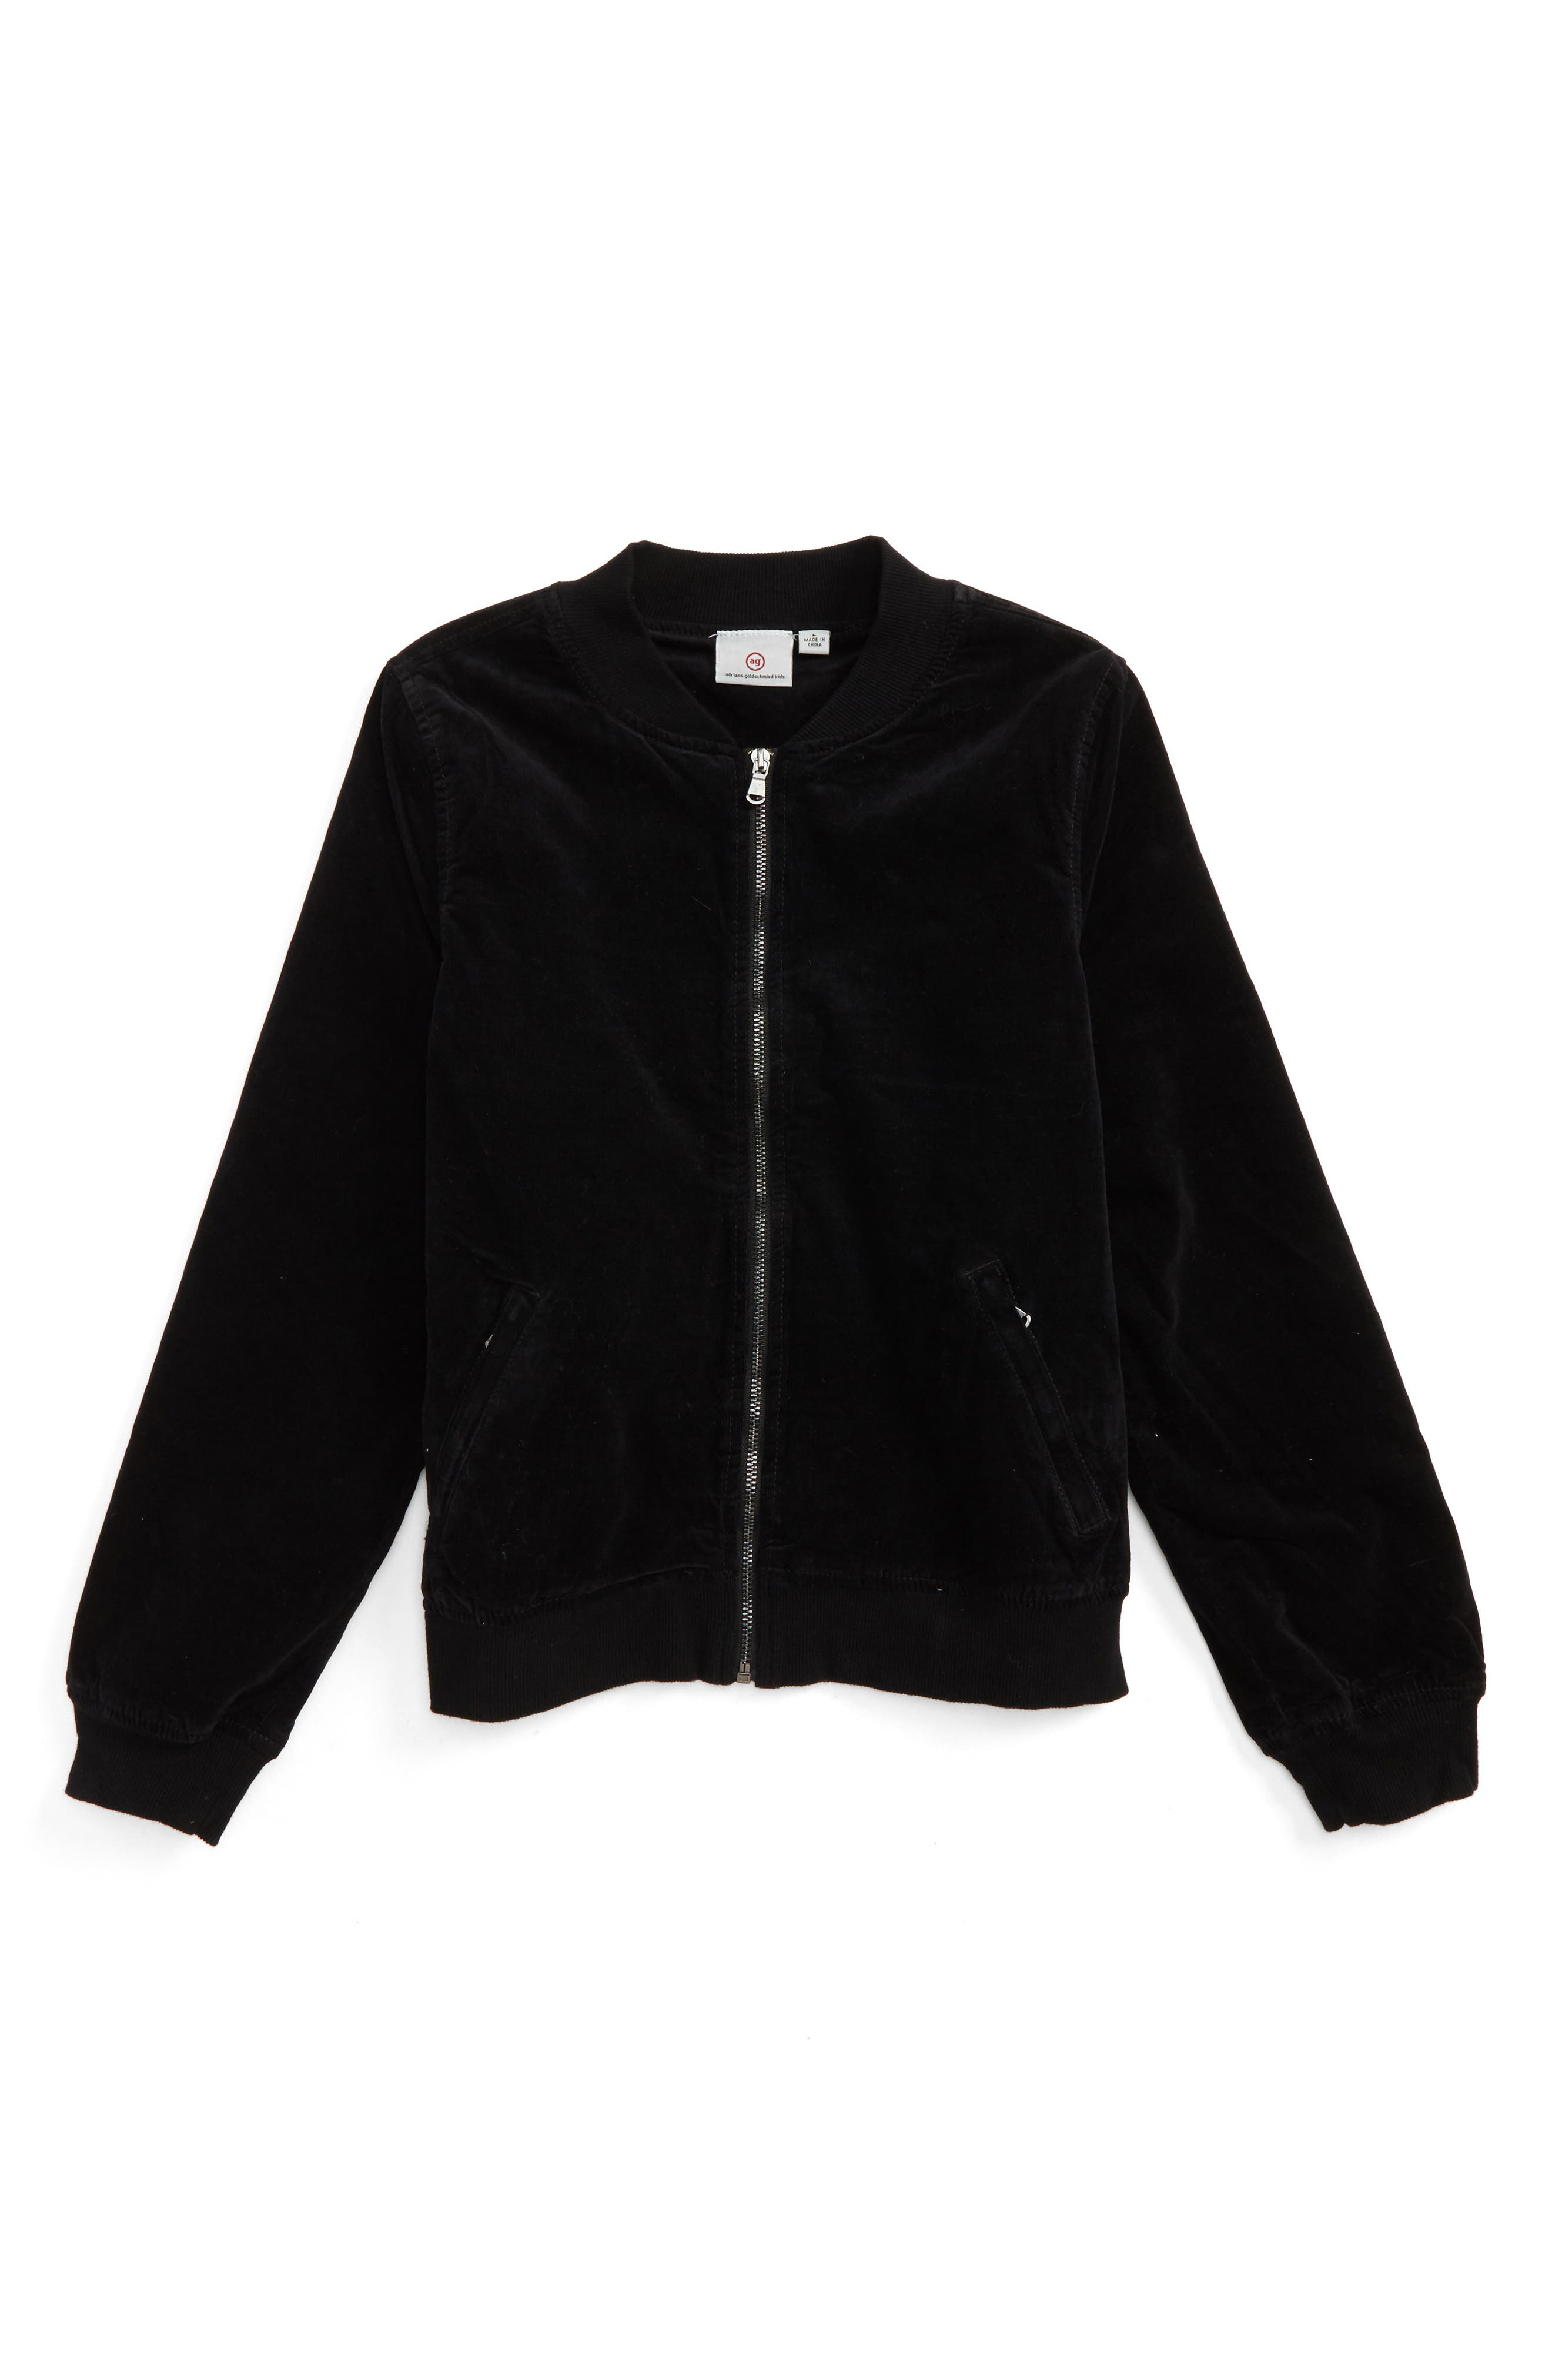 Corduroy Bomber Jacket,                         Main,                         color, Black